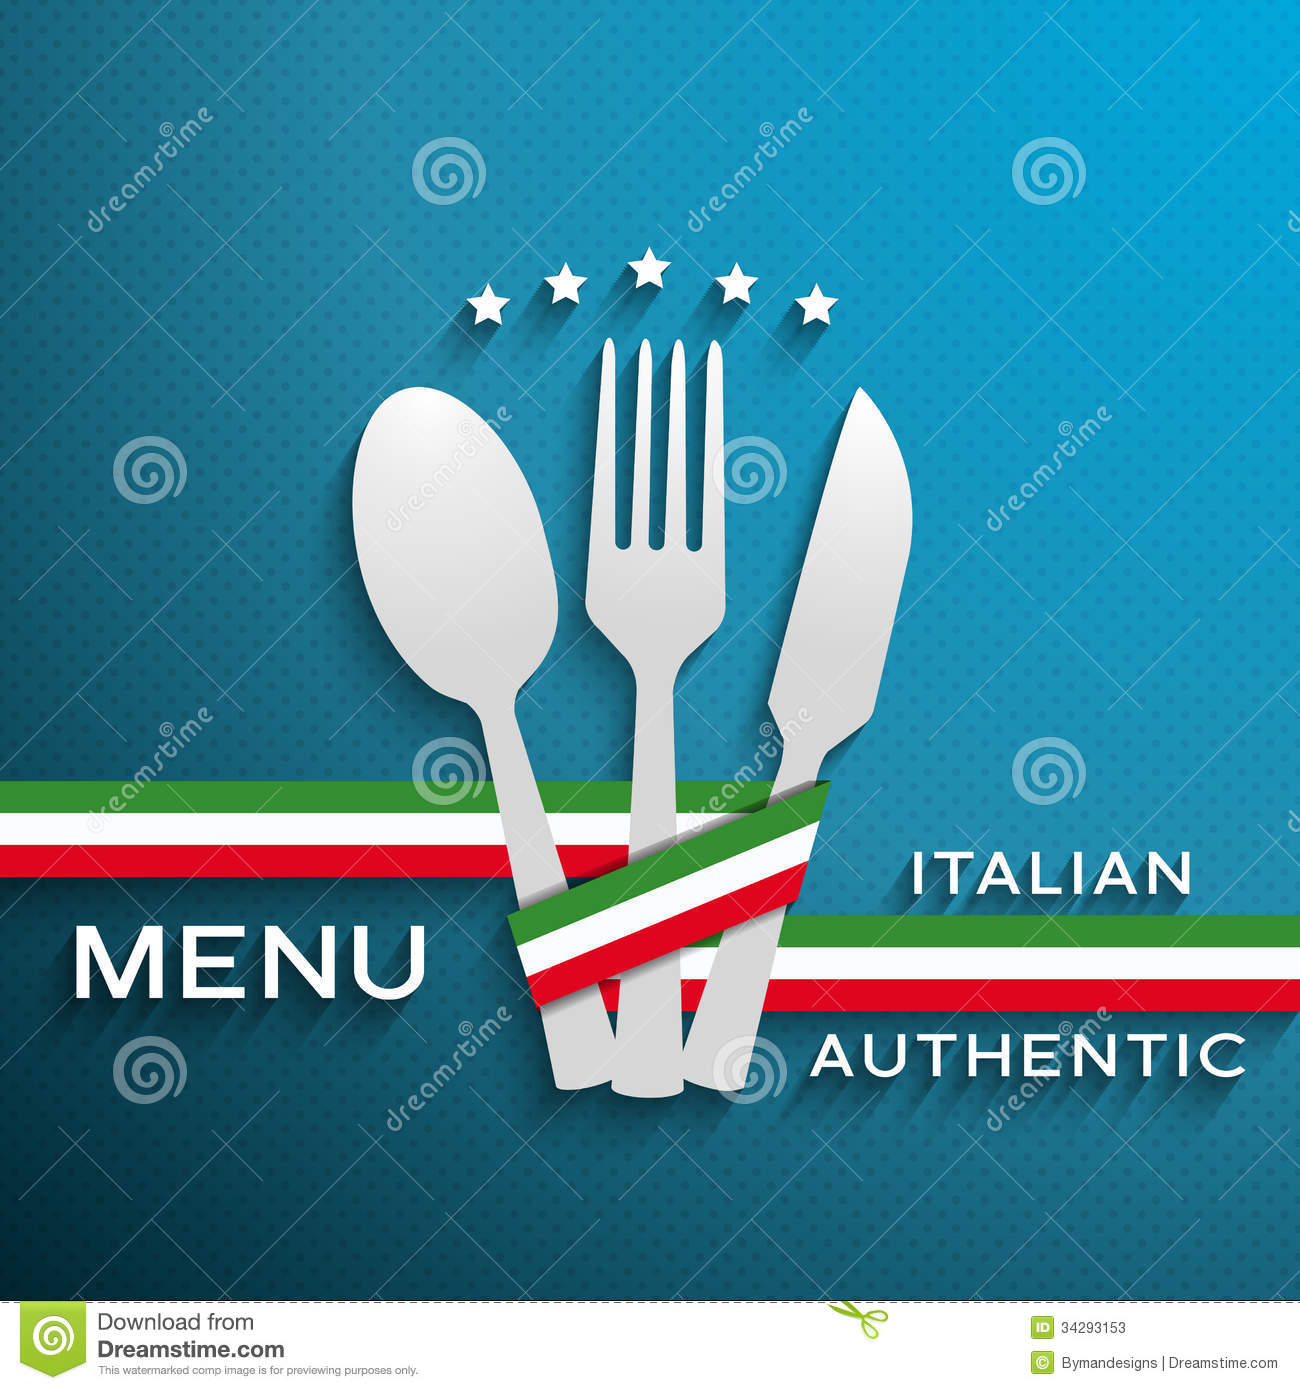 italian restaurant menu design template stock vector - illustration